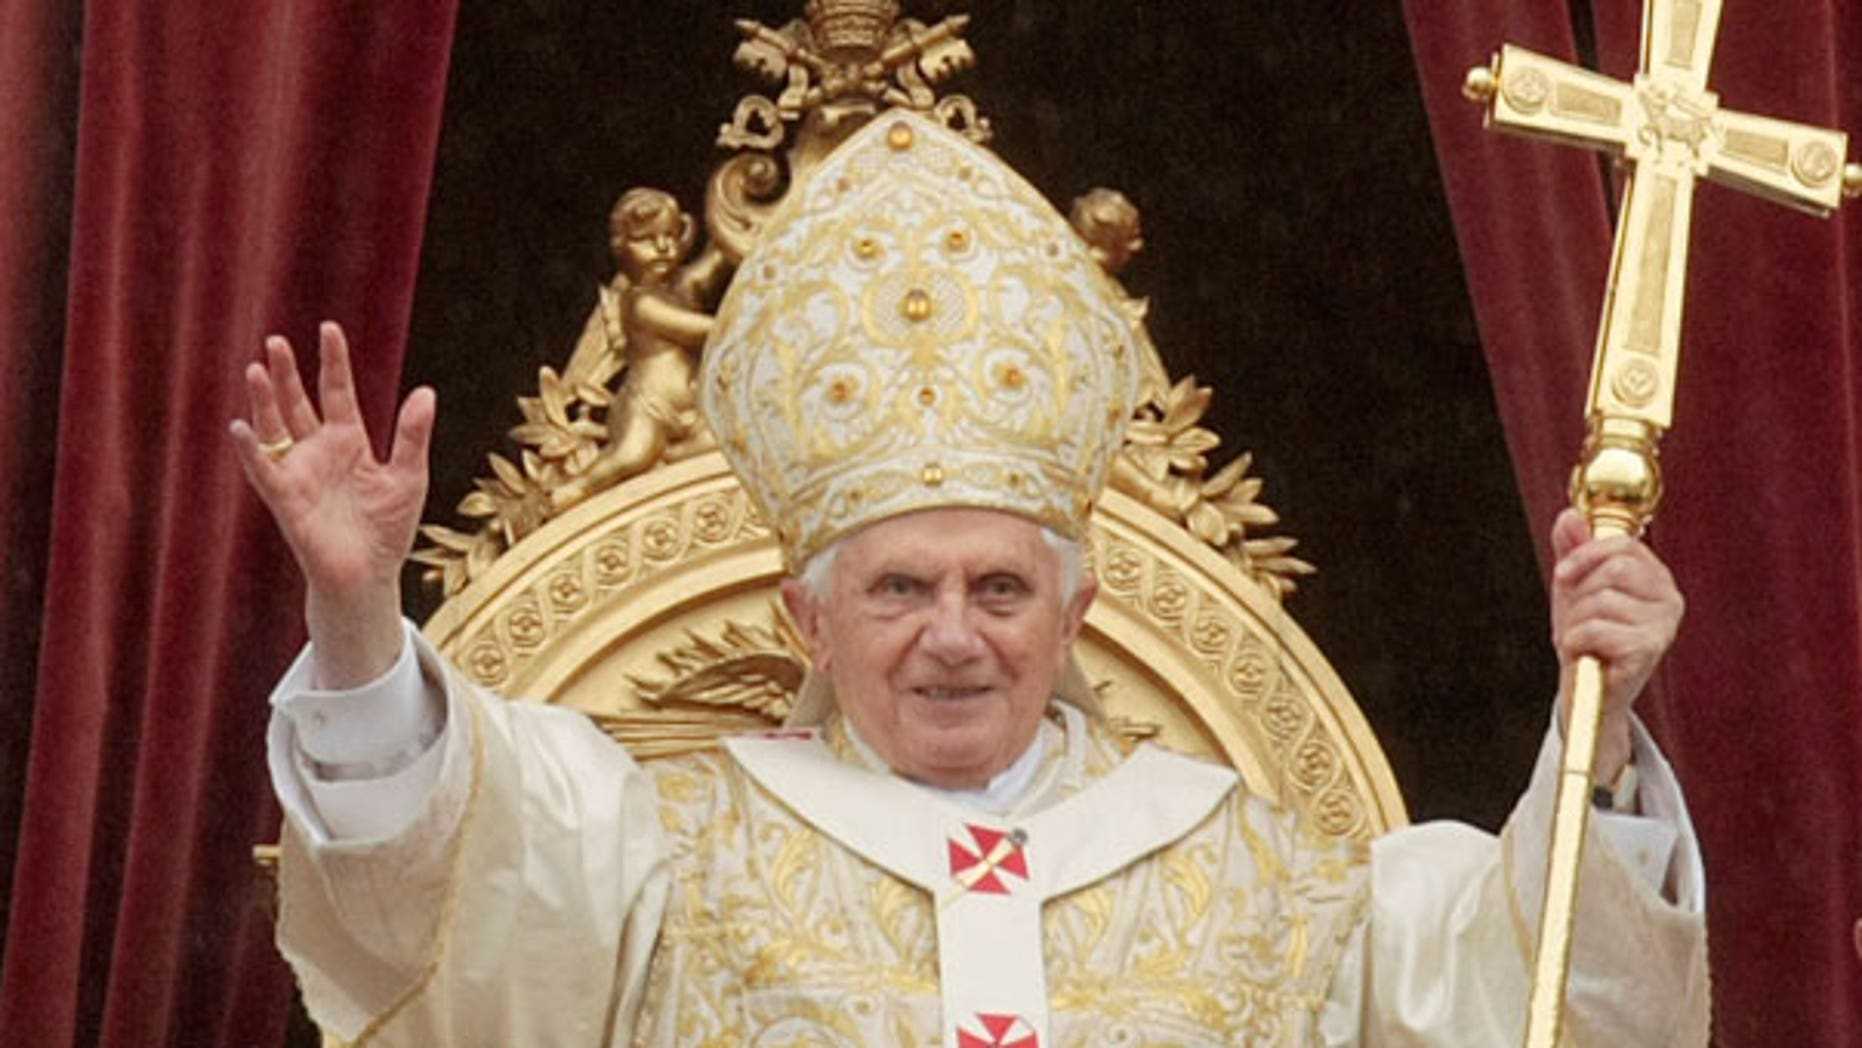 April 4: Pope Benedict XVI waves to faithful at the end of the Easter Mass in St. Peter's square at the Vatican.